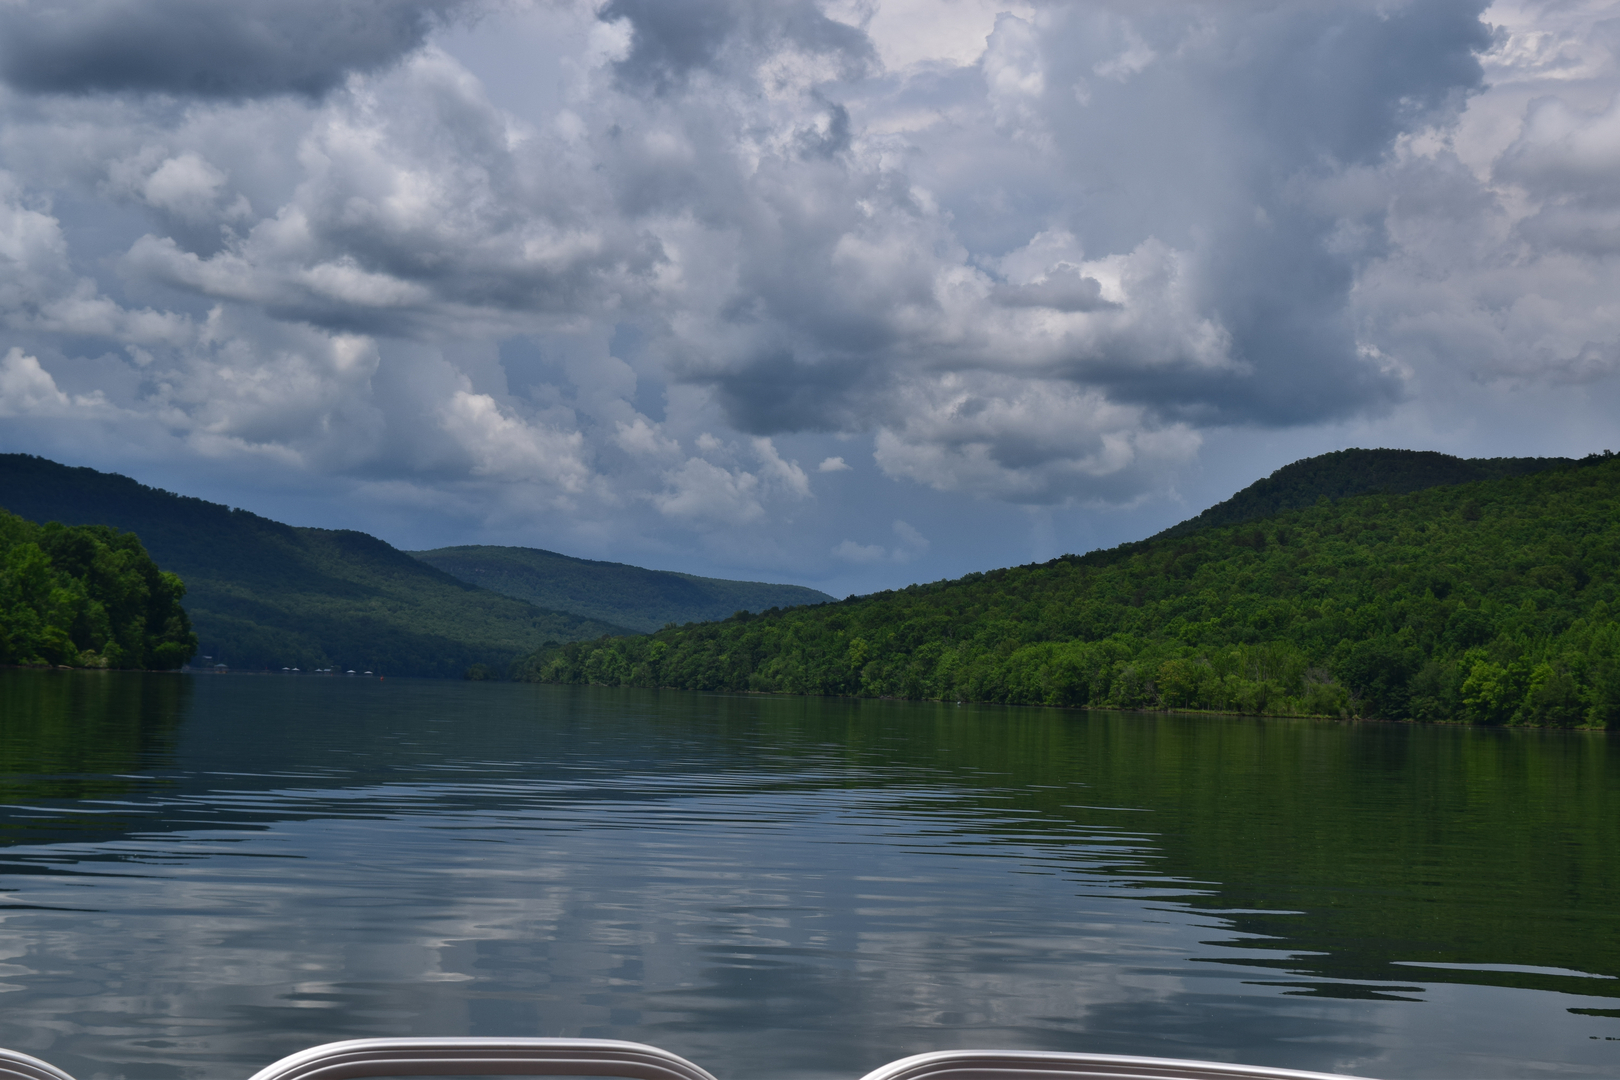 near tennessee hales cabin island cabins accesskeyid alloworigin river bar lake in gorge disposition tn chattanooga nickajack